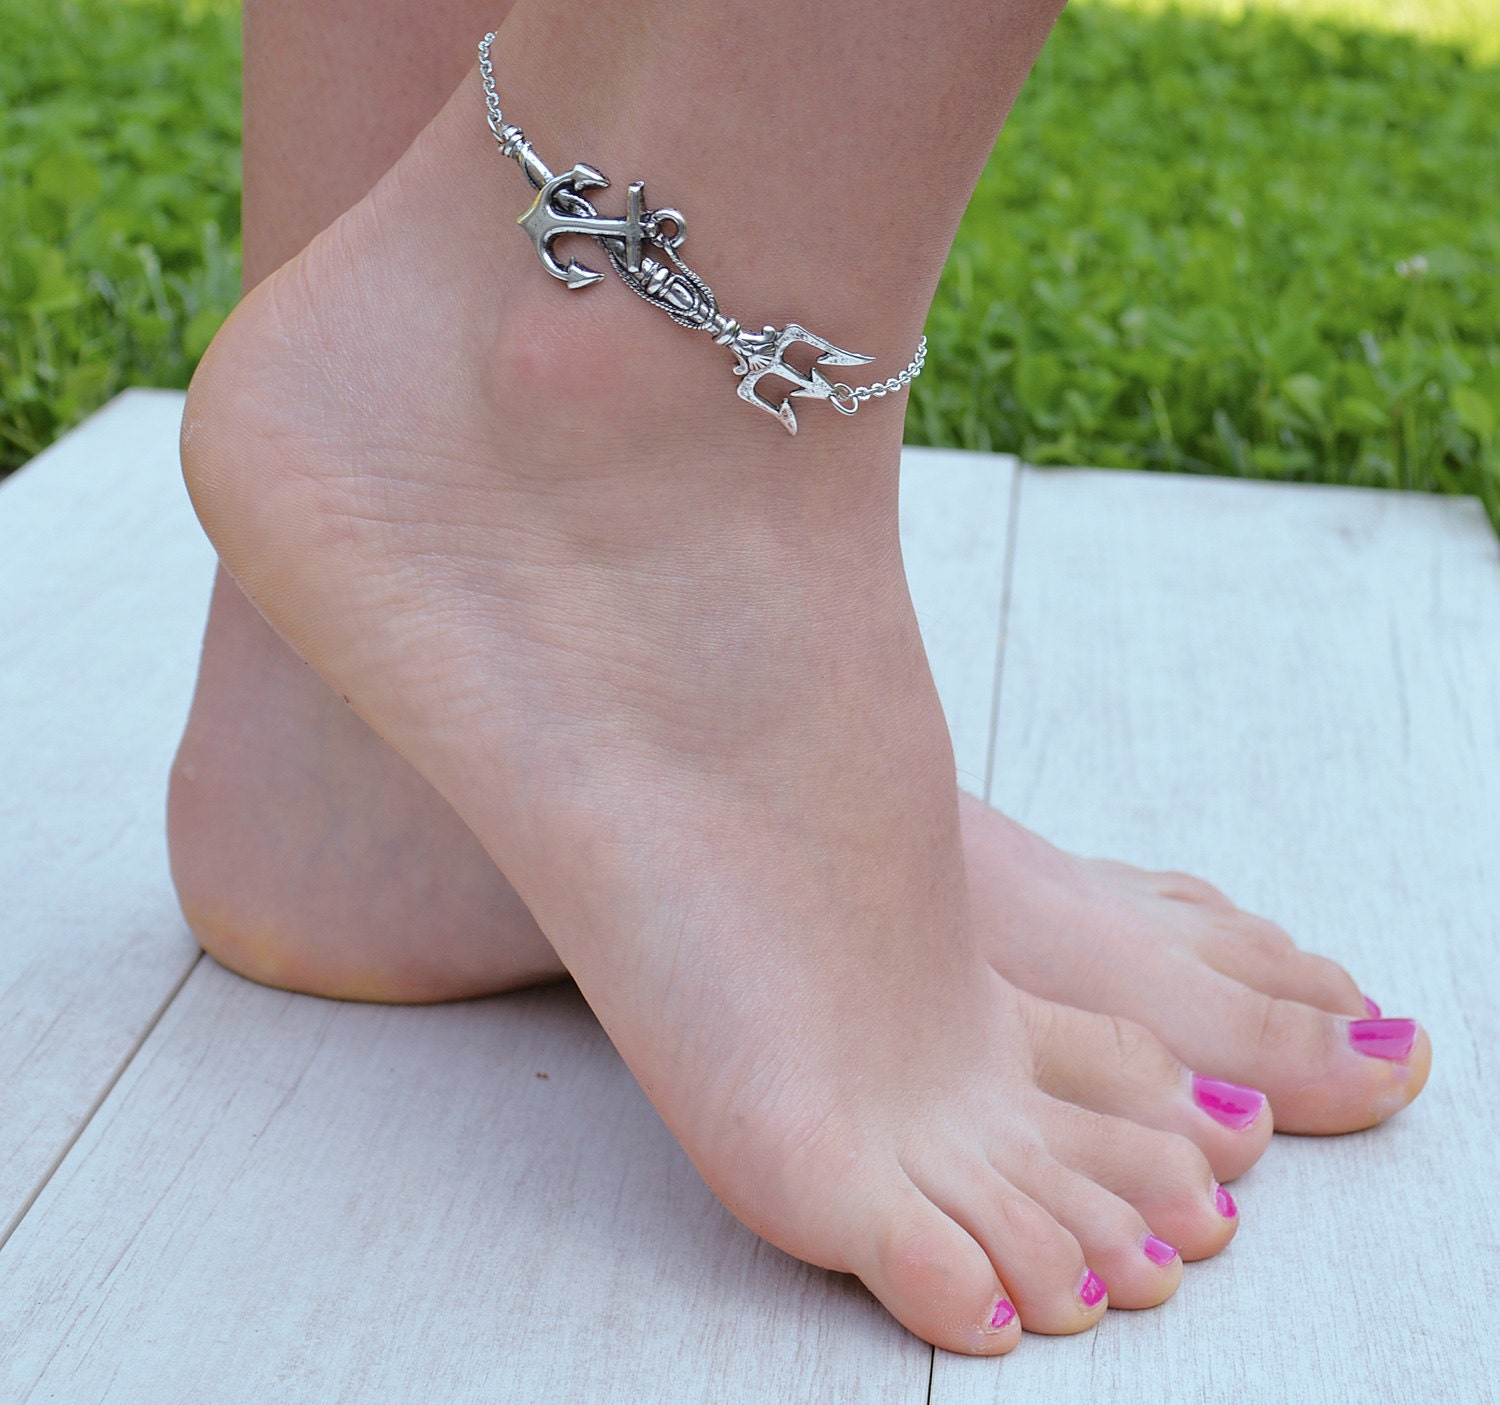 dolls ankle metal kill paradisia anklet chains silver wife